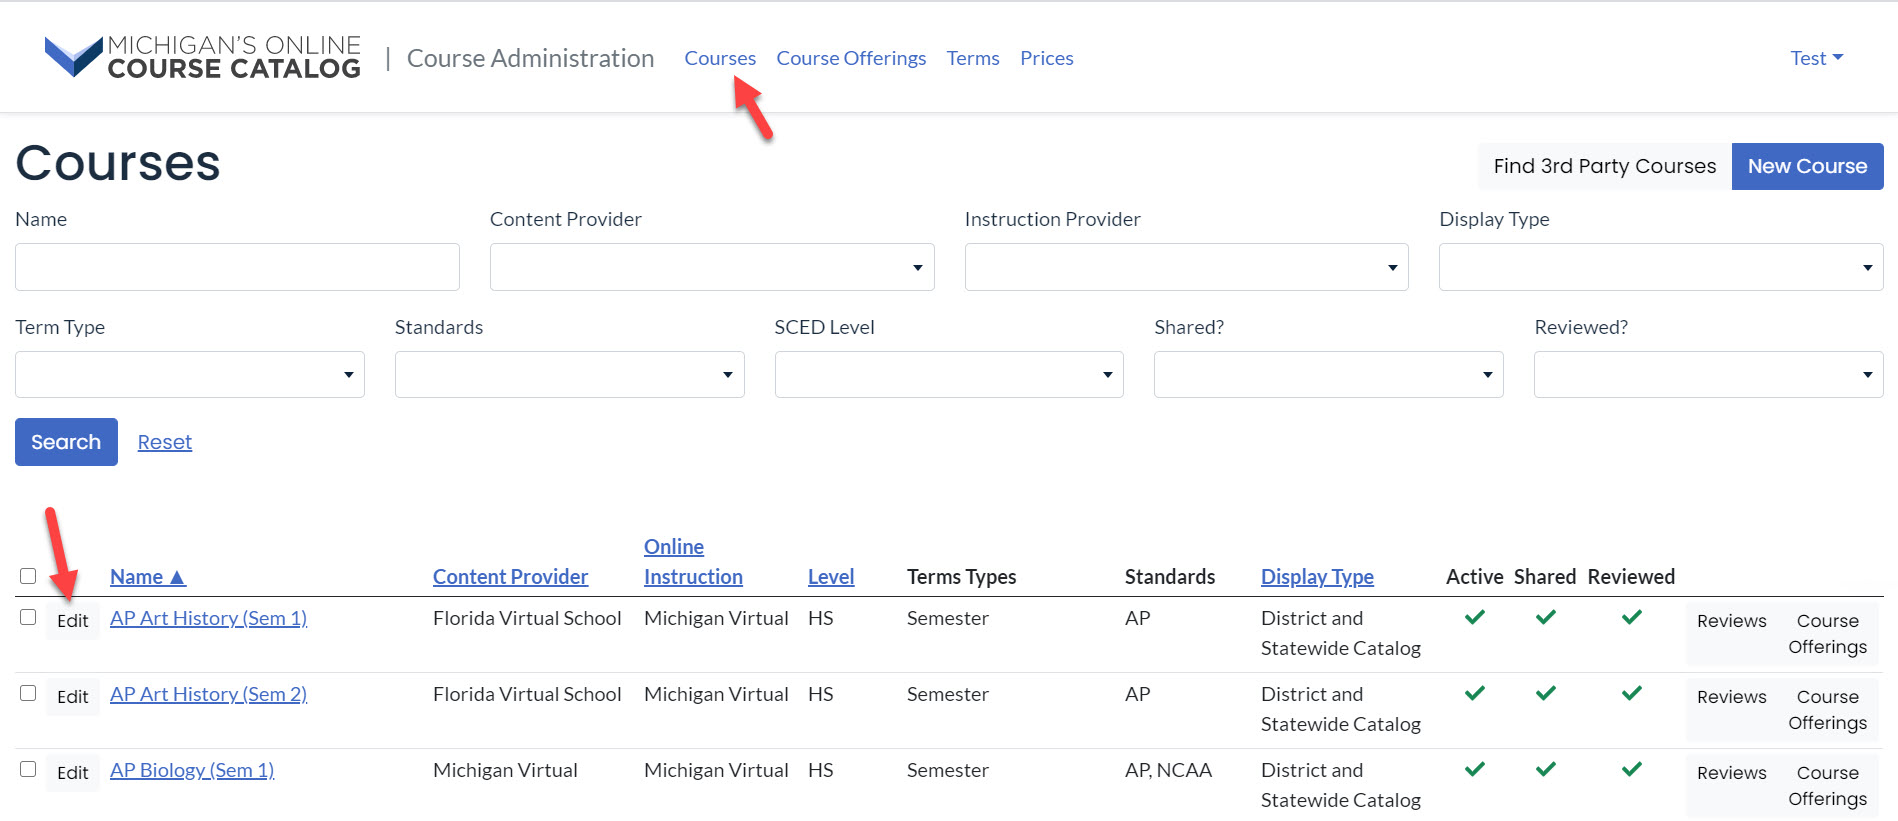 The Courses page is shown with search fields and results table. Arrows point to the courses menu option and to the edit button next to the course title.